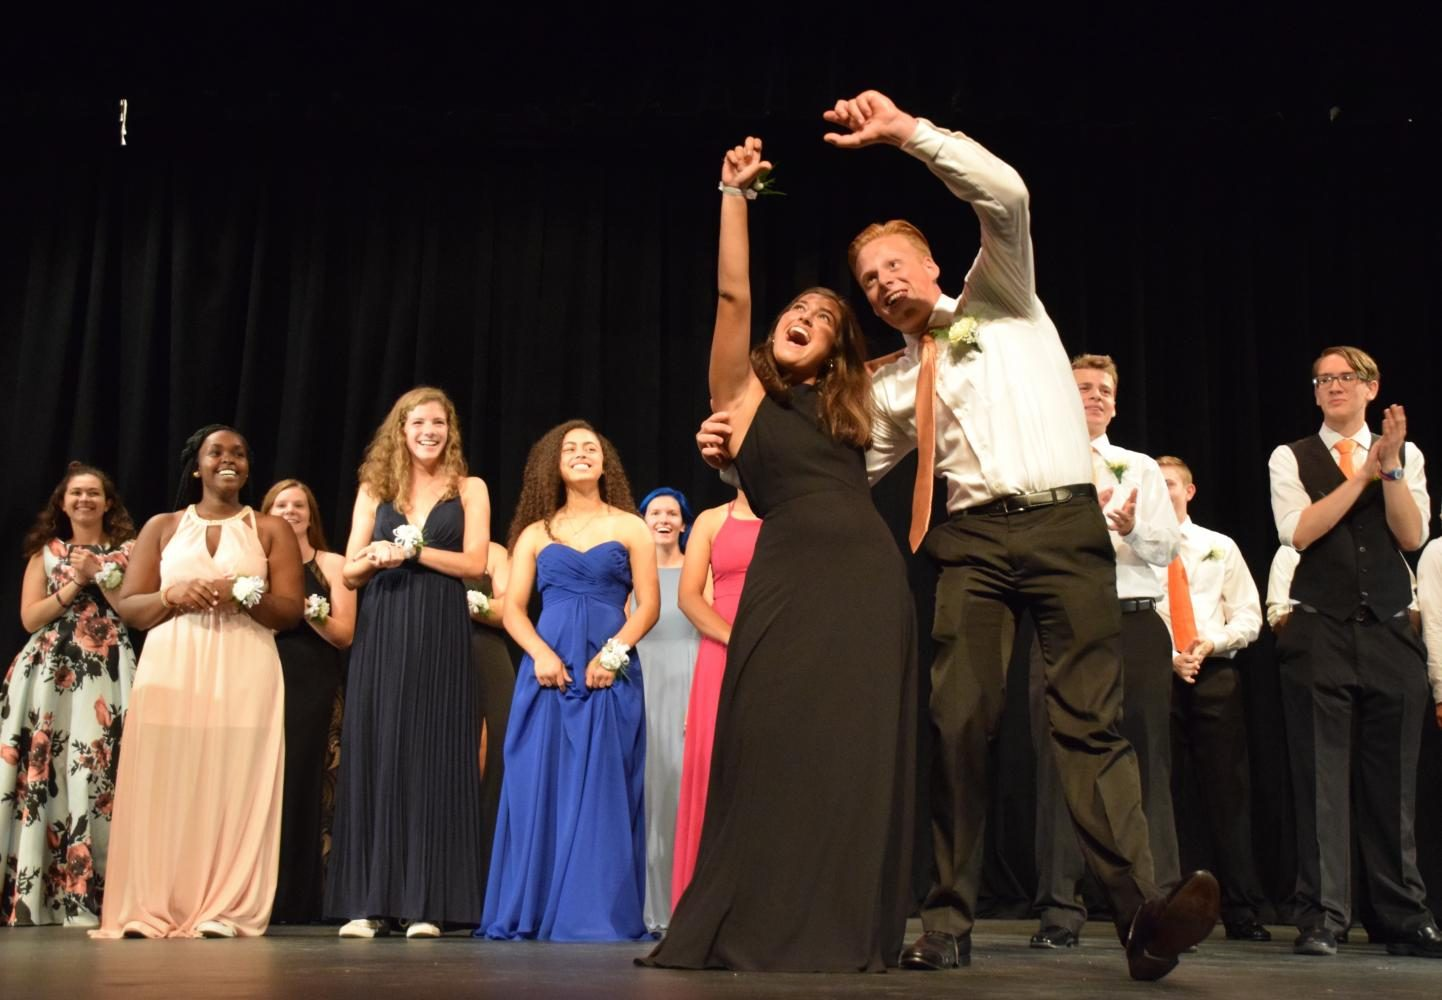 Seniors+Sophie+Yarosh+and+Alec+Pittman+fake+taking+a+selfie+on+stage+during+Wednesdays+coronation+ceremony%2C+Sept%2C+13.+